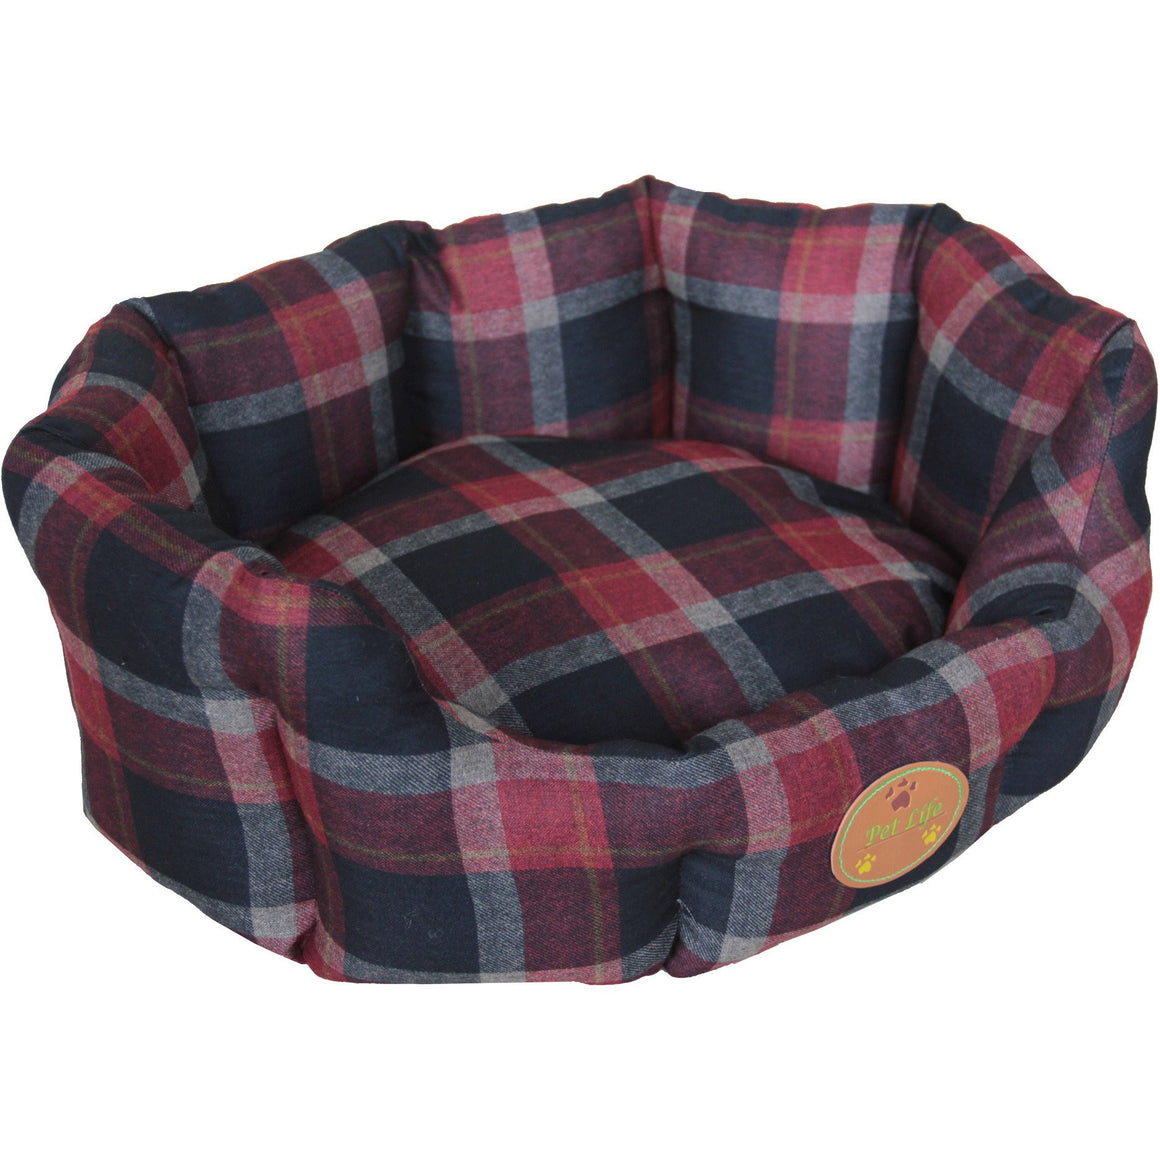 Anti-Bacterial/Water Resistant Round Dog Bed - XSmall - Red/Blue Plaid